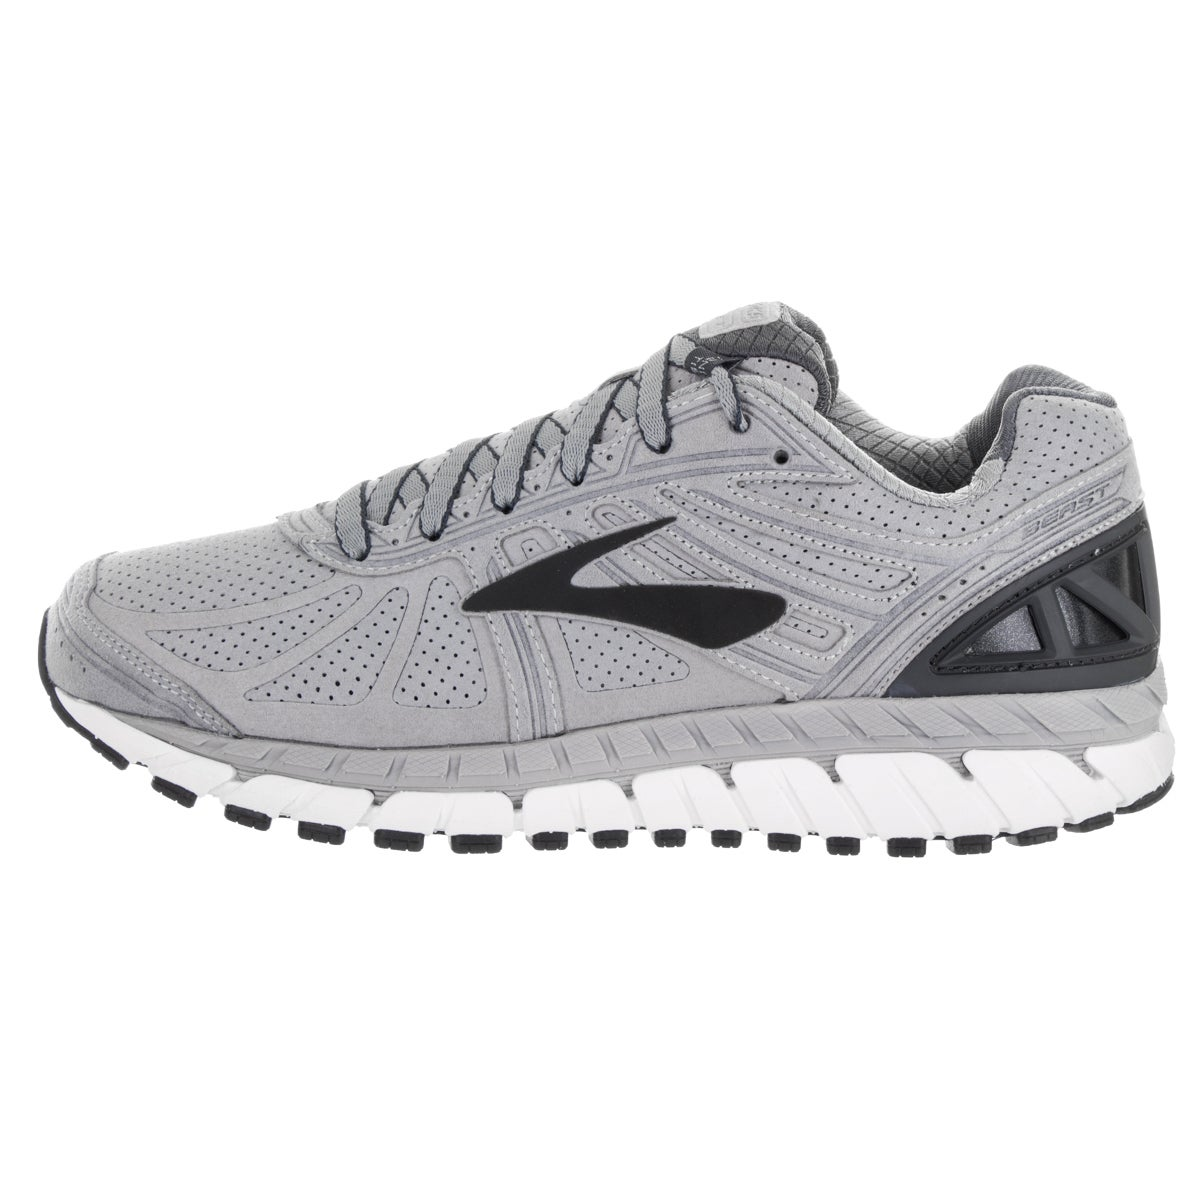 27f5a3b67c225 Shop Brooks Men s Beast  16 LE Silver Suede Running Shoes - Free Shipping  Today - Overstock - 13620275